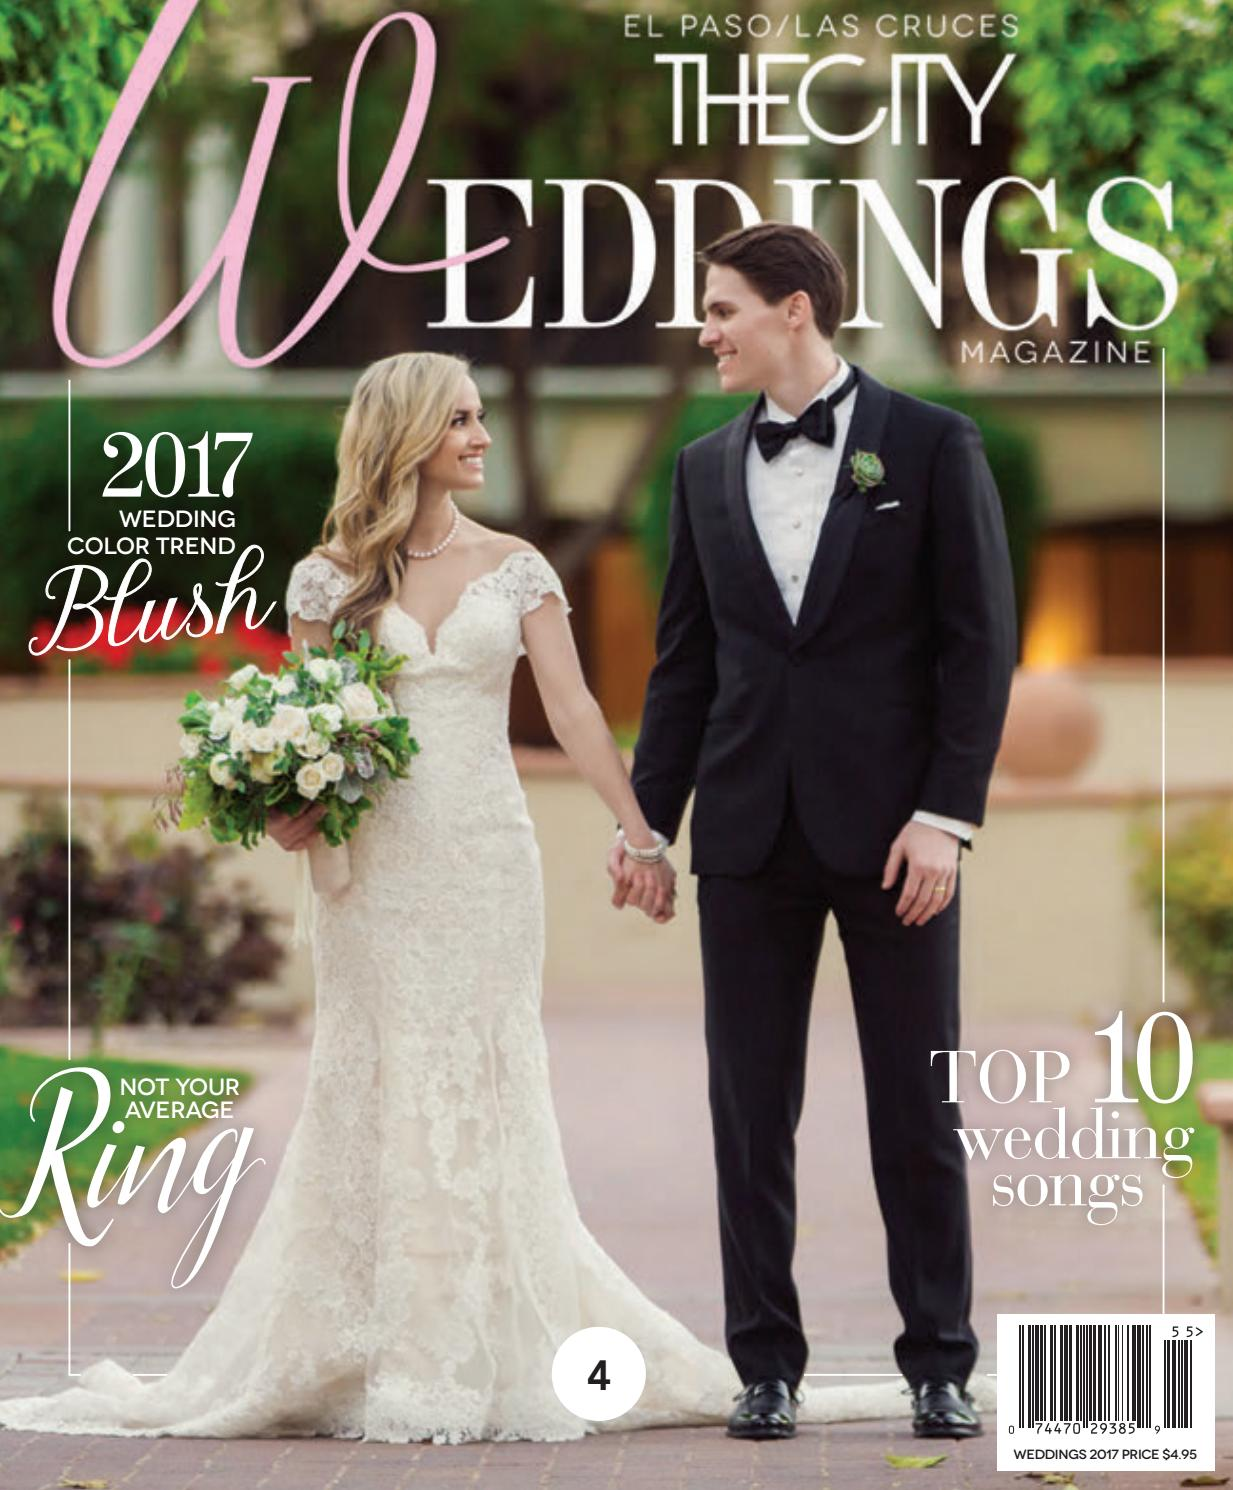 THECITY Weddings • 2017 By THECITY Magazine El Paso/Las